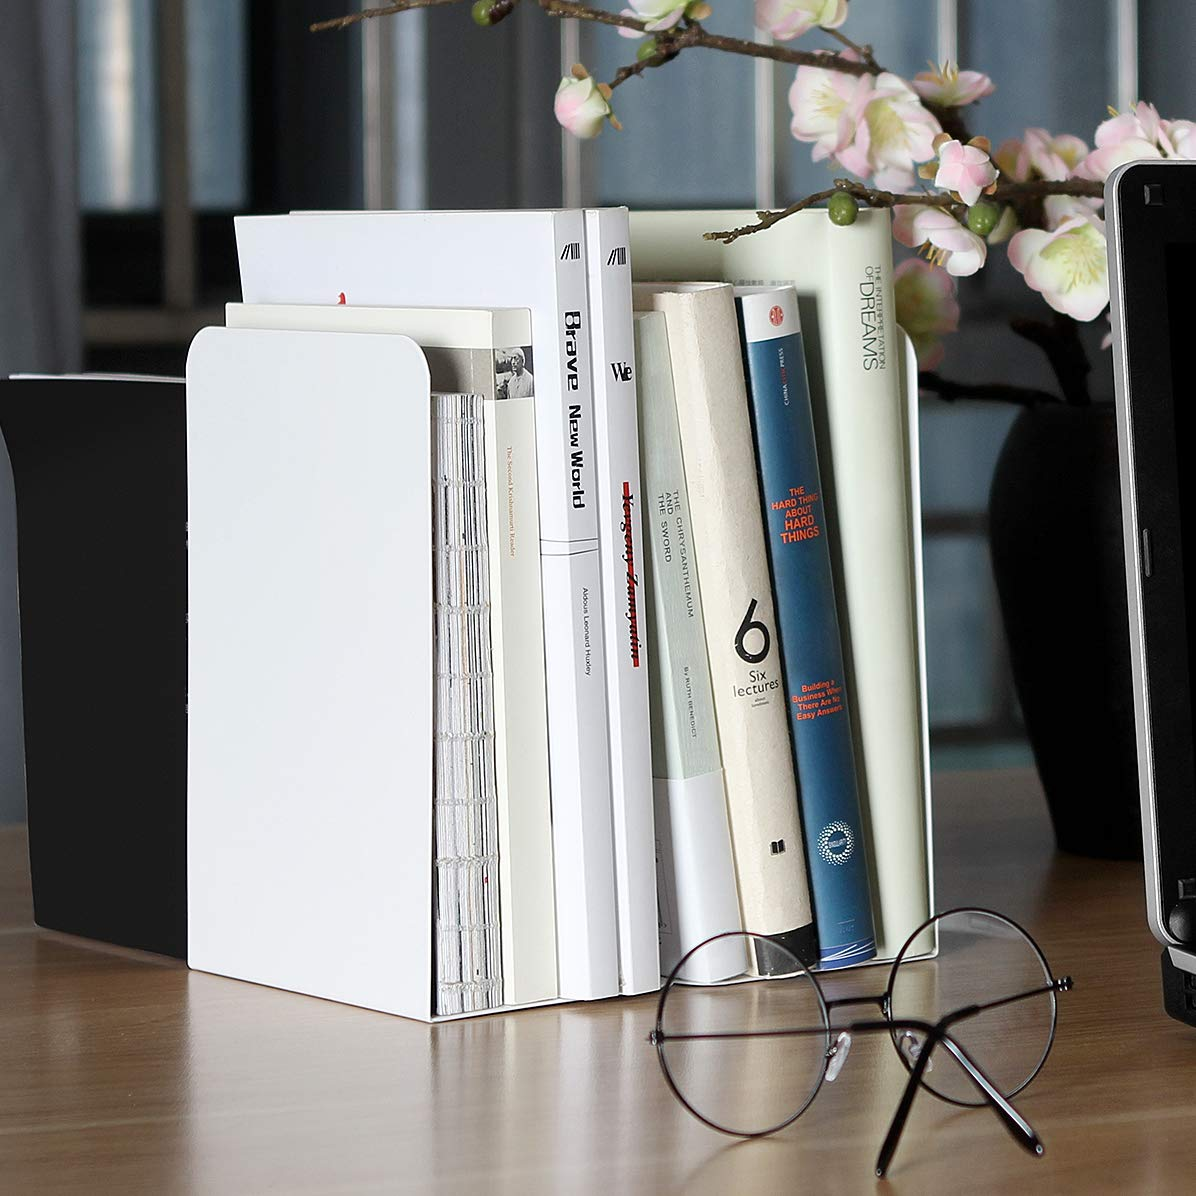 8 Inch Decorative Metal Nonskid Book Ends Supports for Books DVDs Video Games Movies ABUFF 2 Pcs Larger Modern Bookends Black Standard Magazines 8 X 3.9 X 5.3 Inch